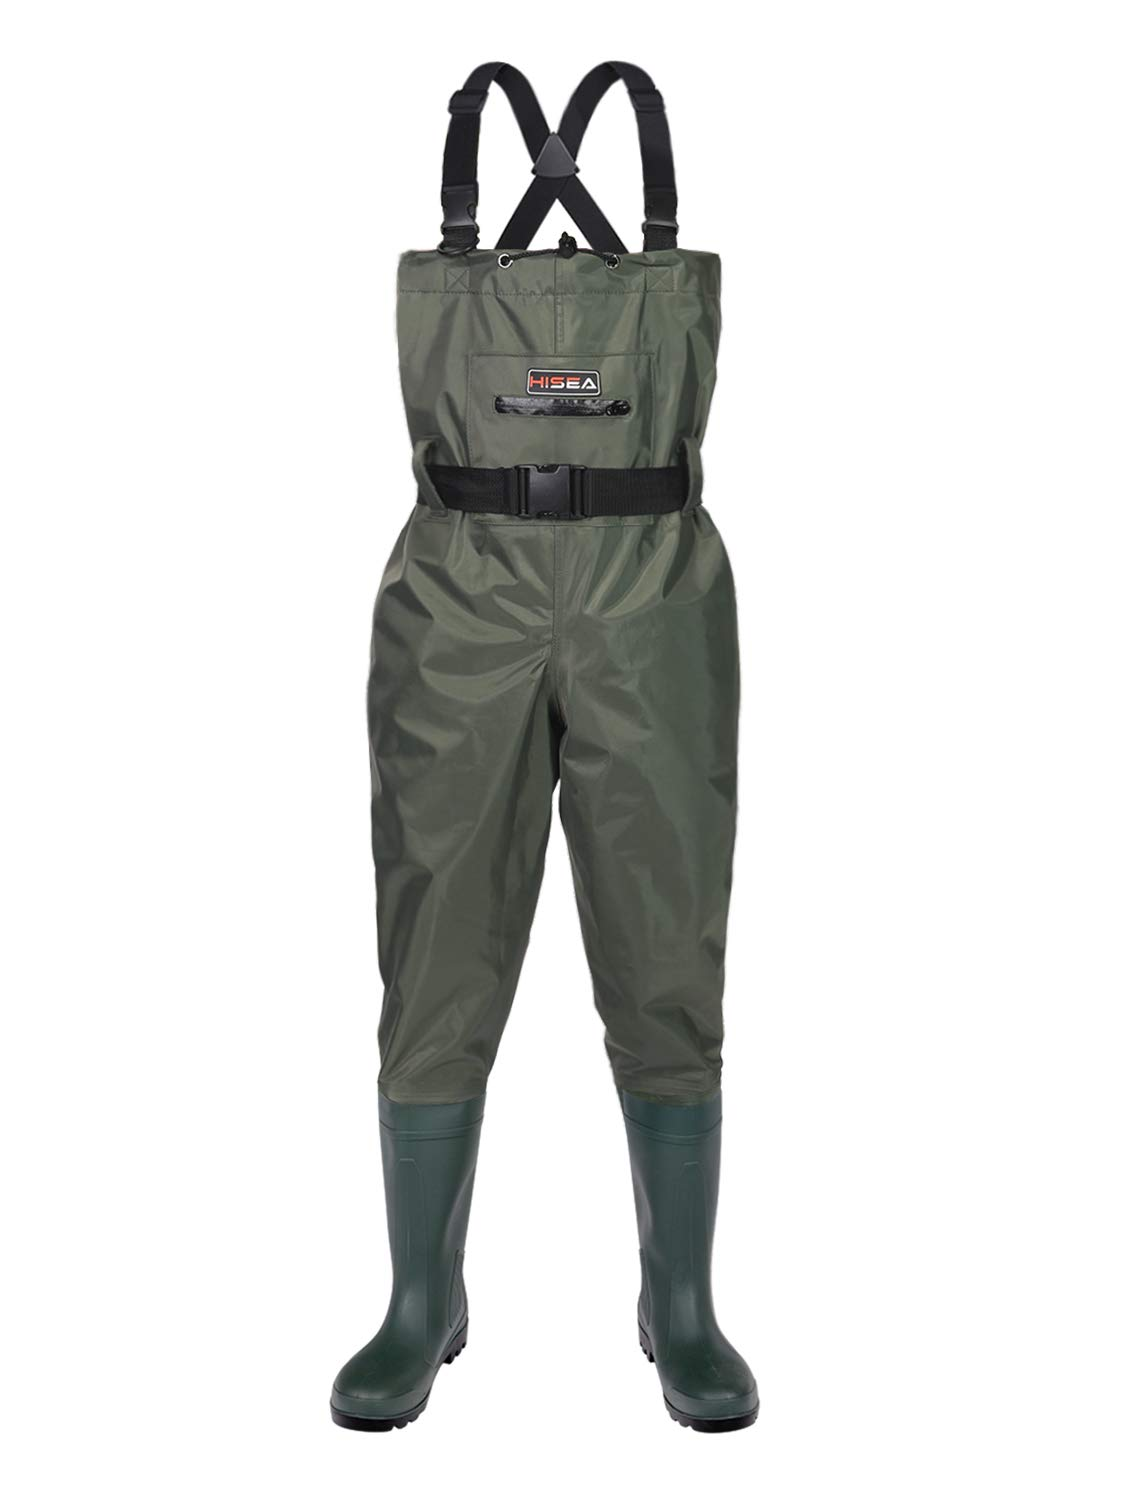 Hisea Upgrade Chest Waders Fishing Waders for Men with Steel Toe Boots Waterproof Lightweight Bootfoot Cleated 2-Ply Nylon PVC